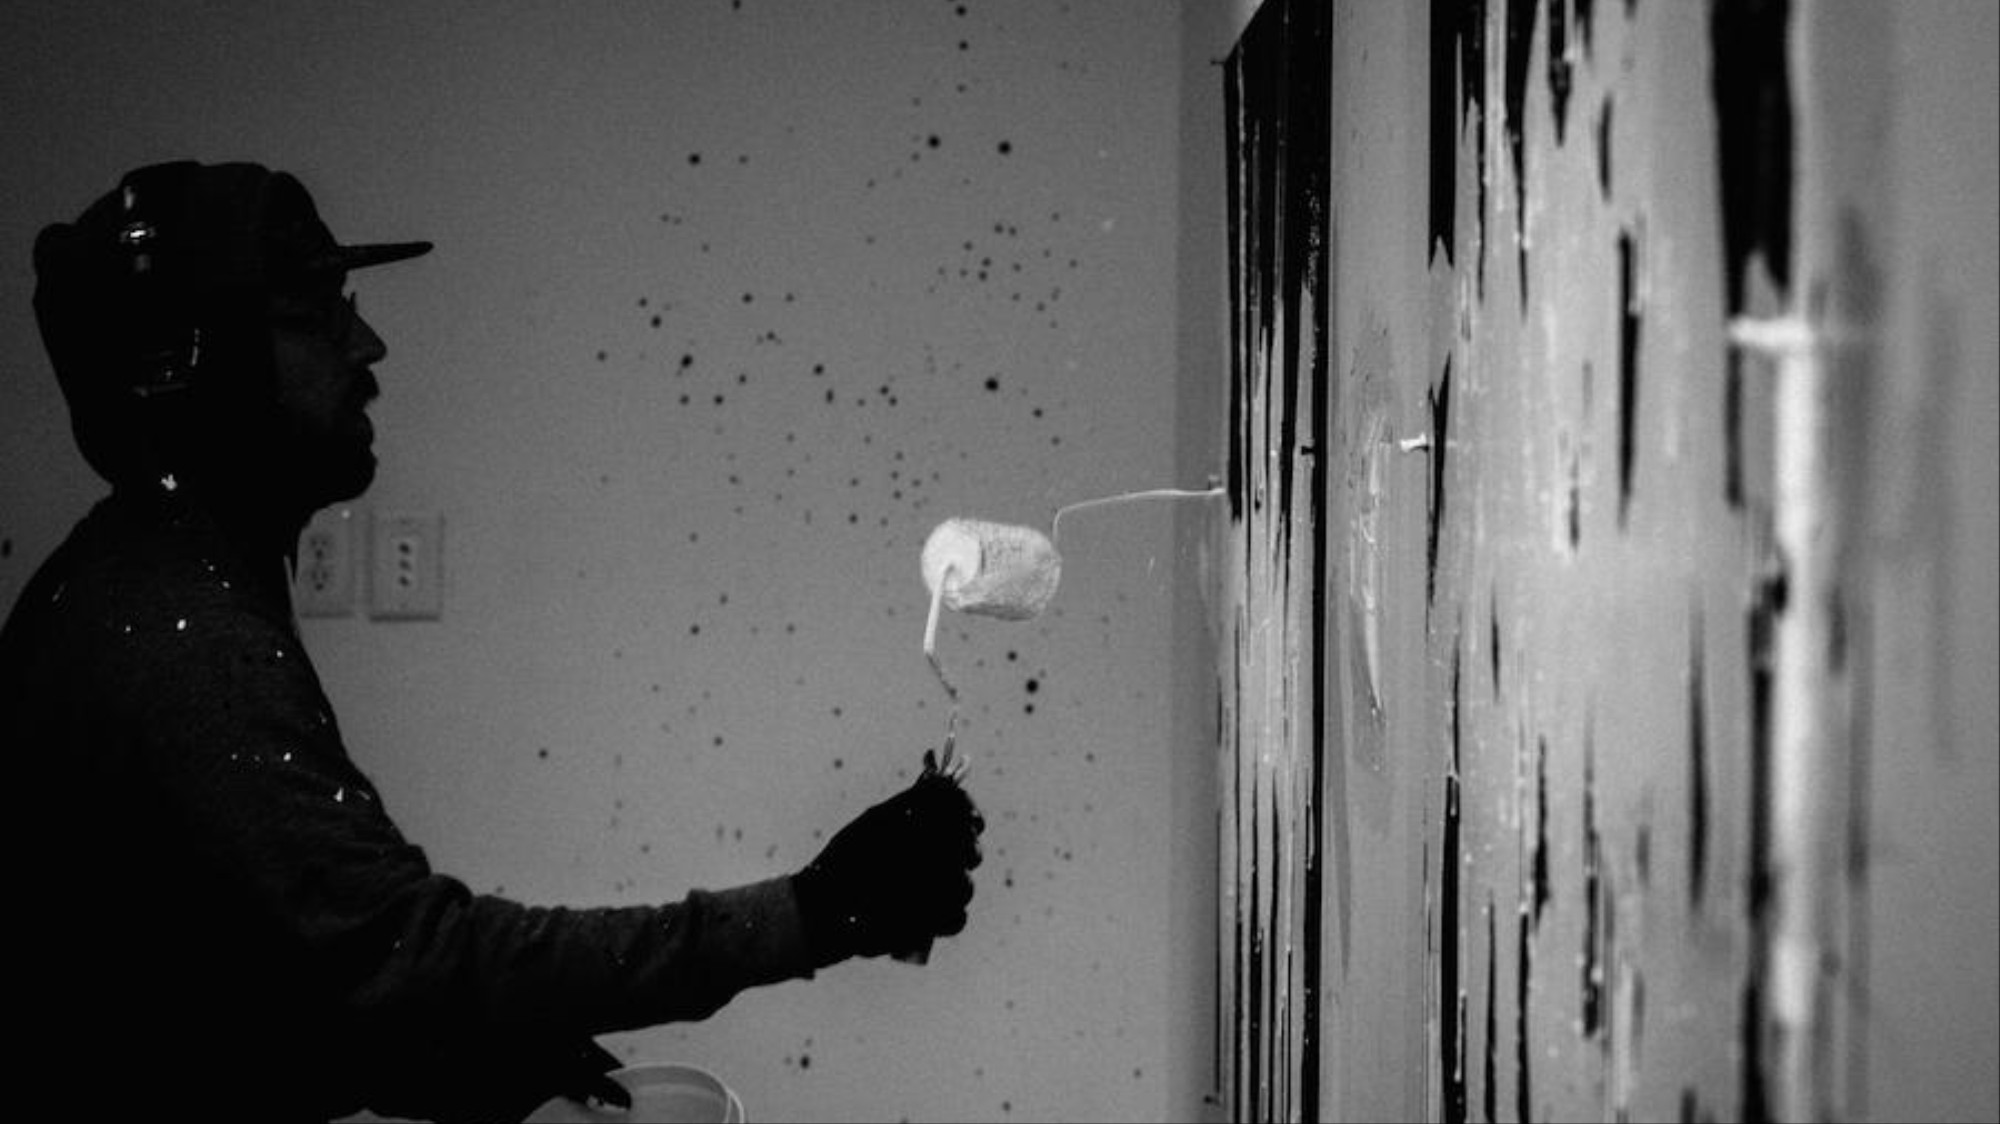 A black and white image of a silhouetted man splattering paint on a wall.